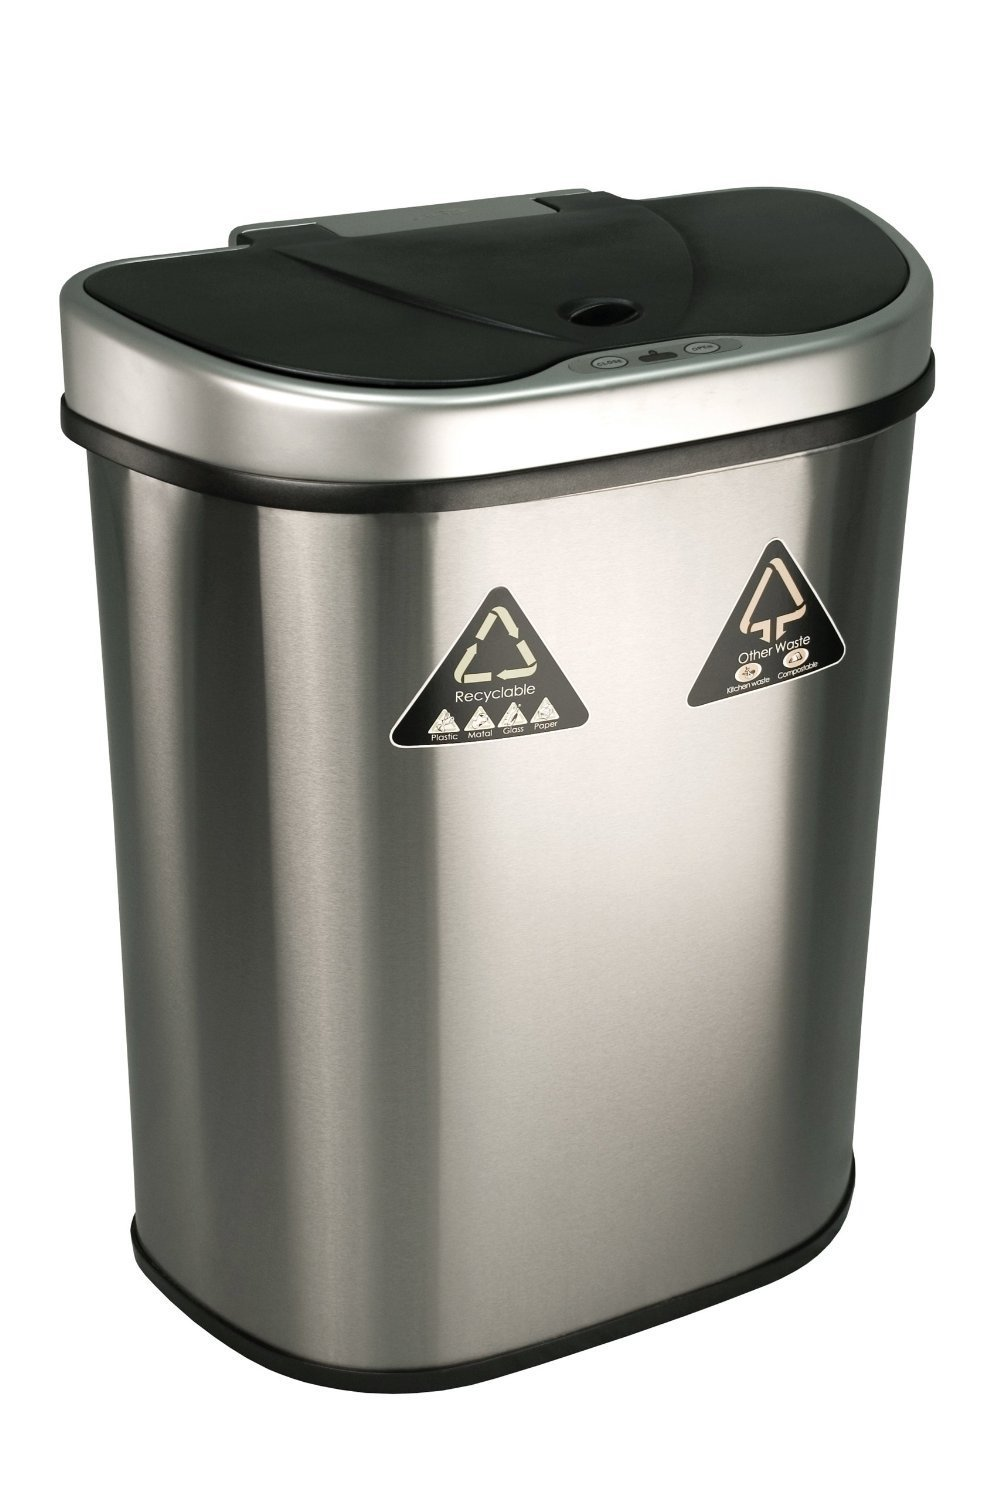 NINESTARS DZT-70-11R The Original Touchless Automatic Motion Sensor Trash Can/Recycler, 18.5 Gal. / 70 L., Stainless Steel